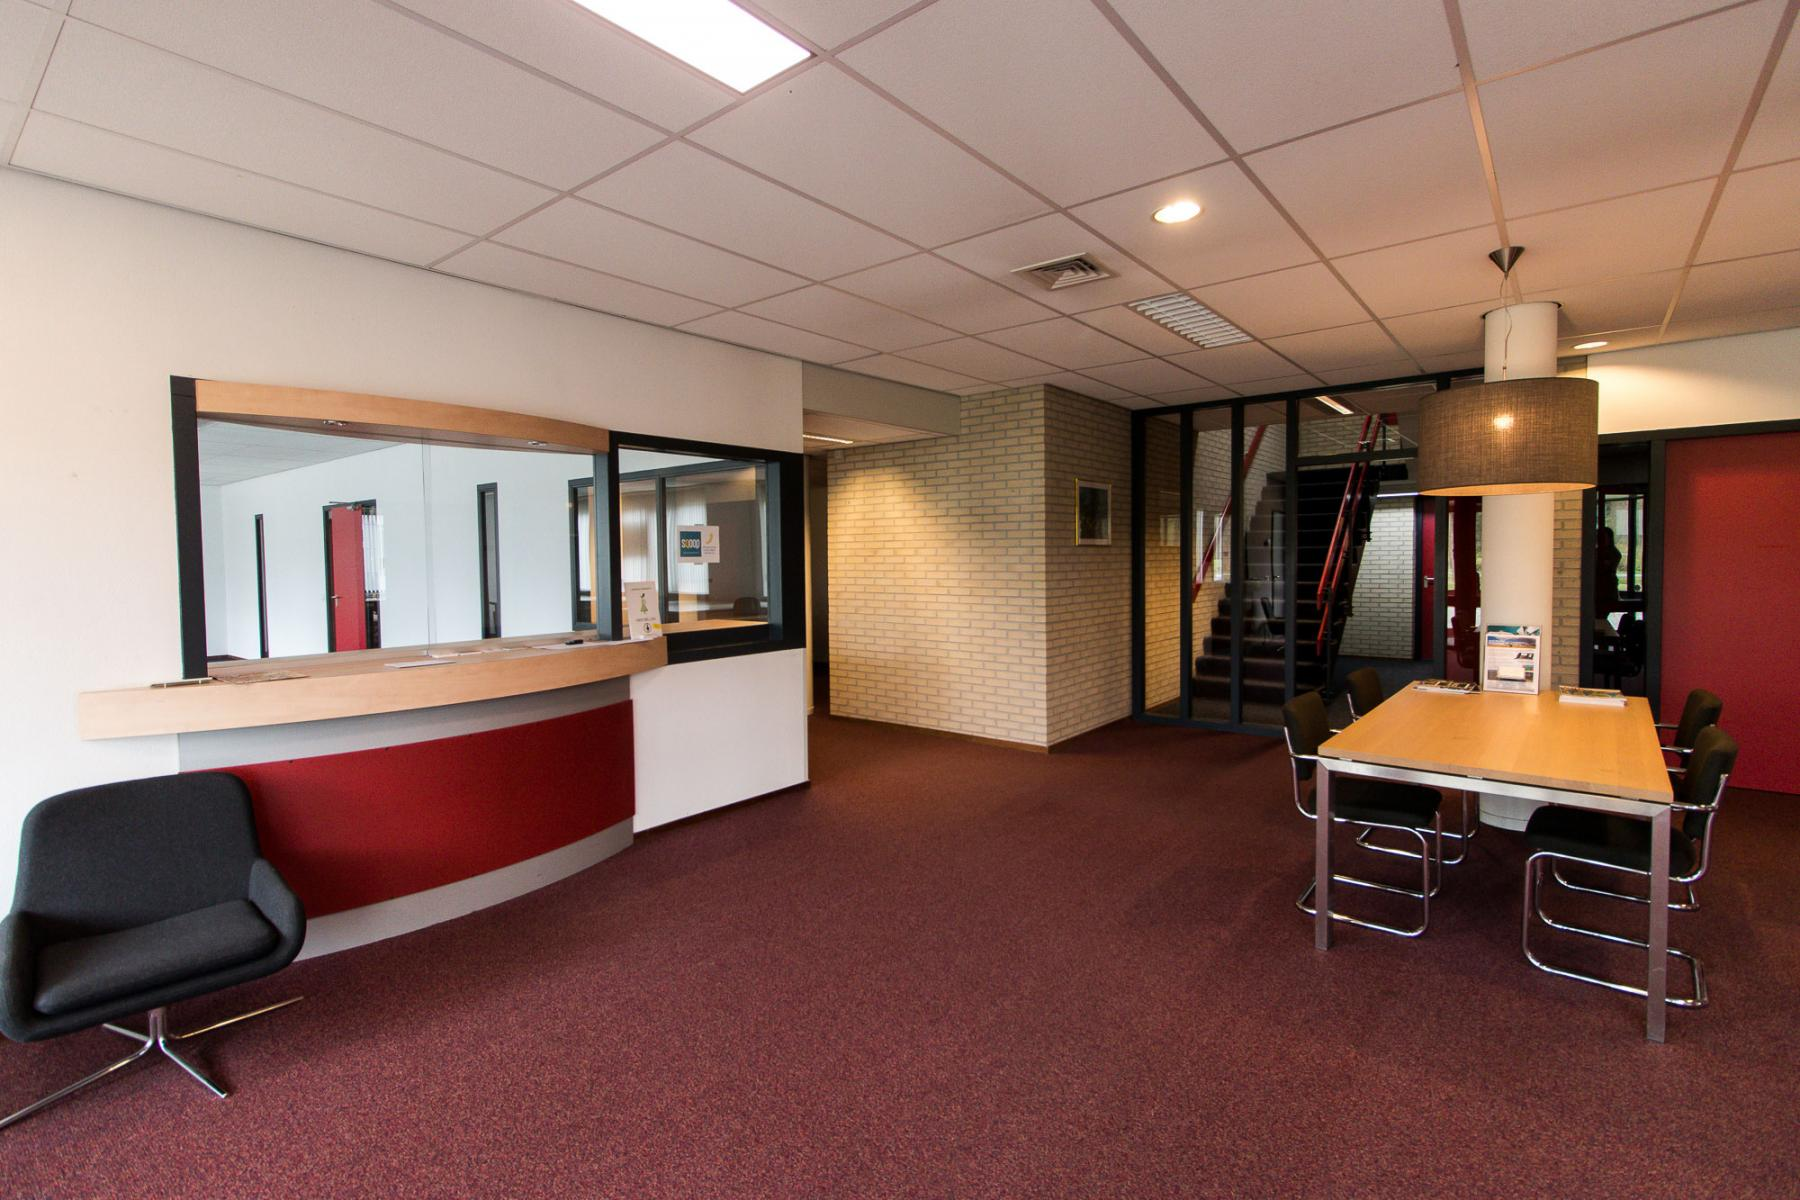 Entrance with waiting room